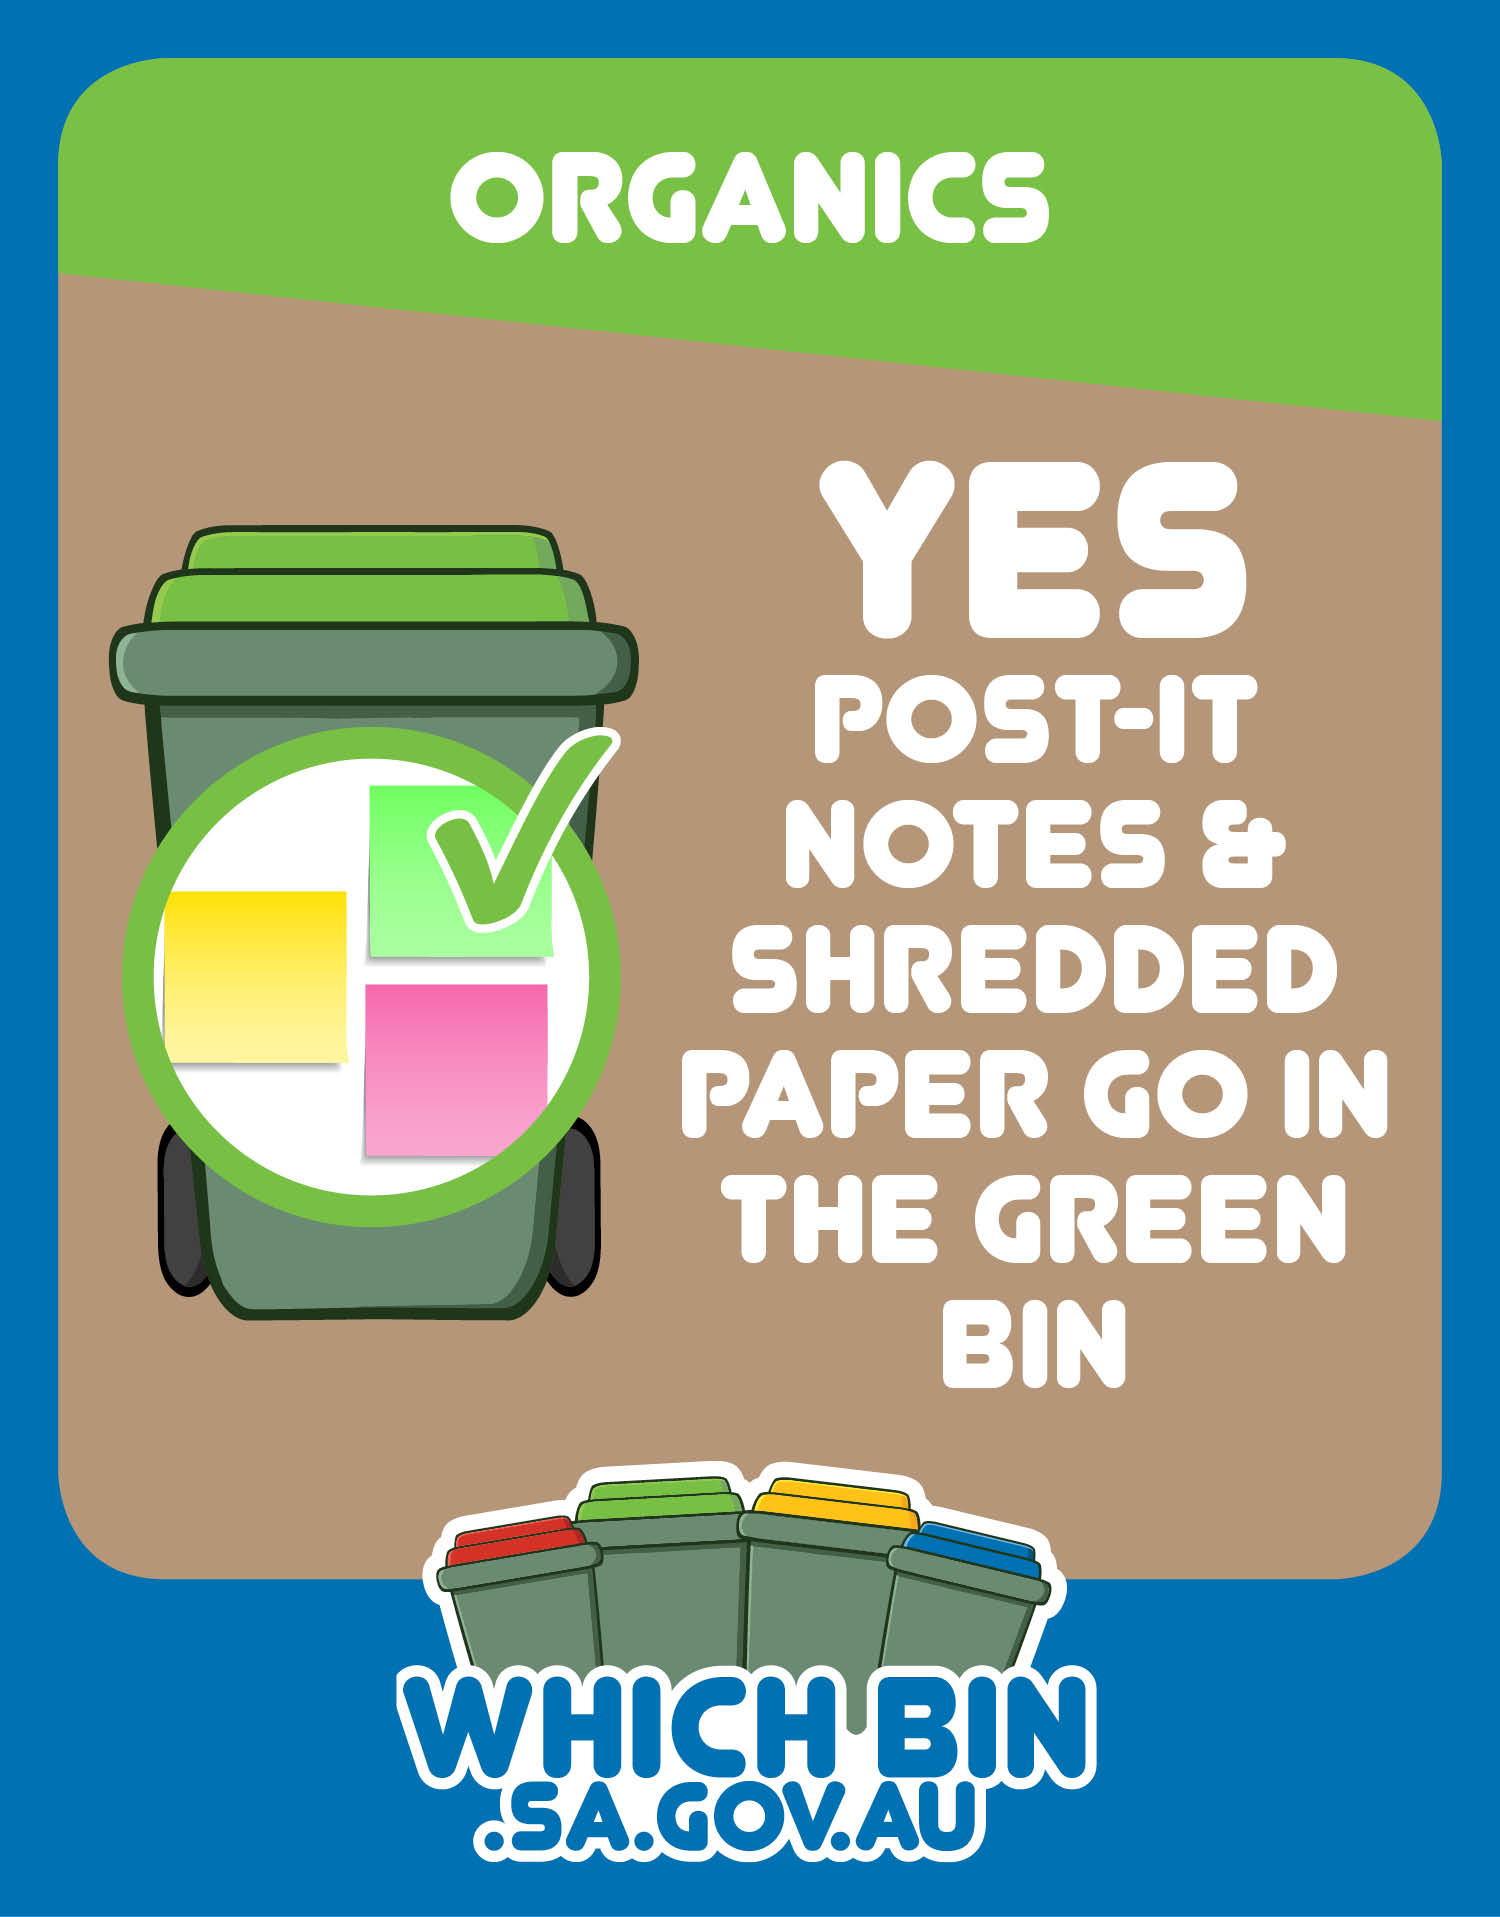 Shredded paper is good to go in the green bin.